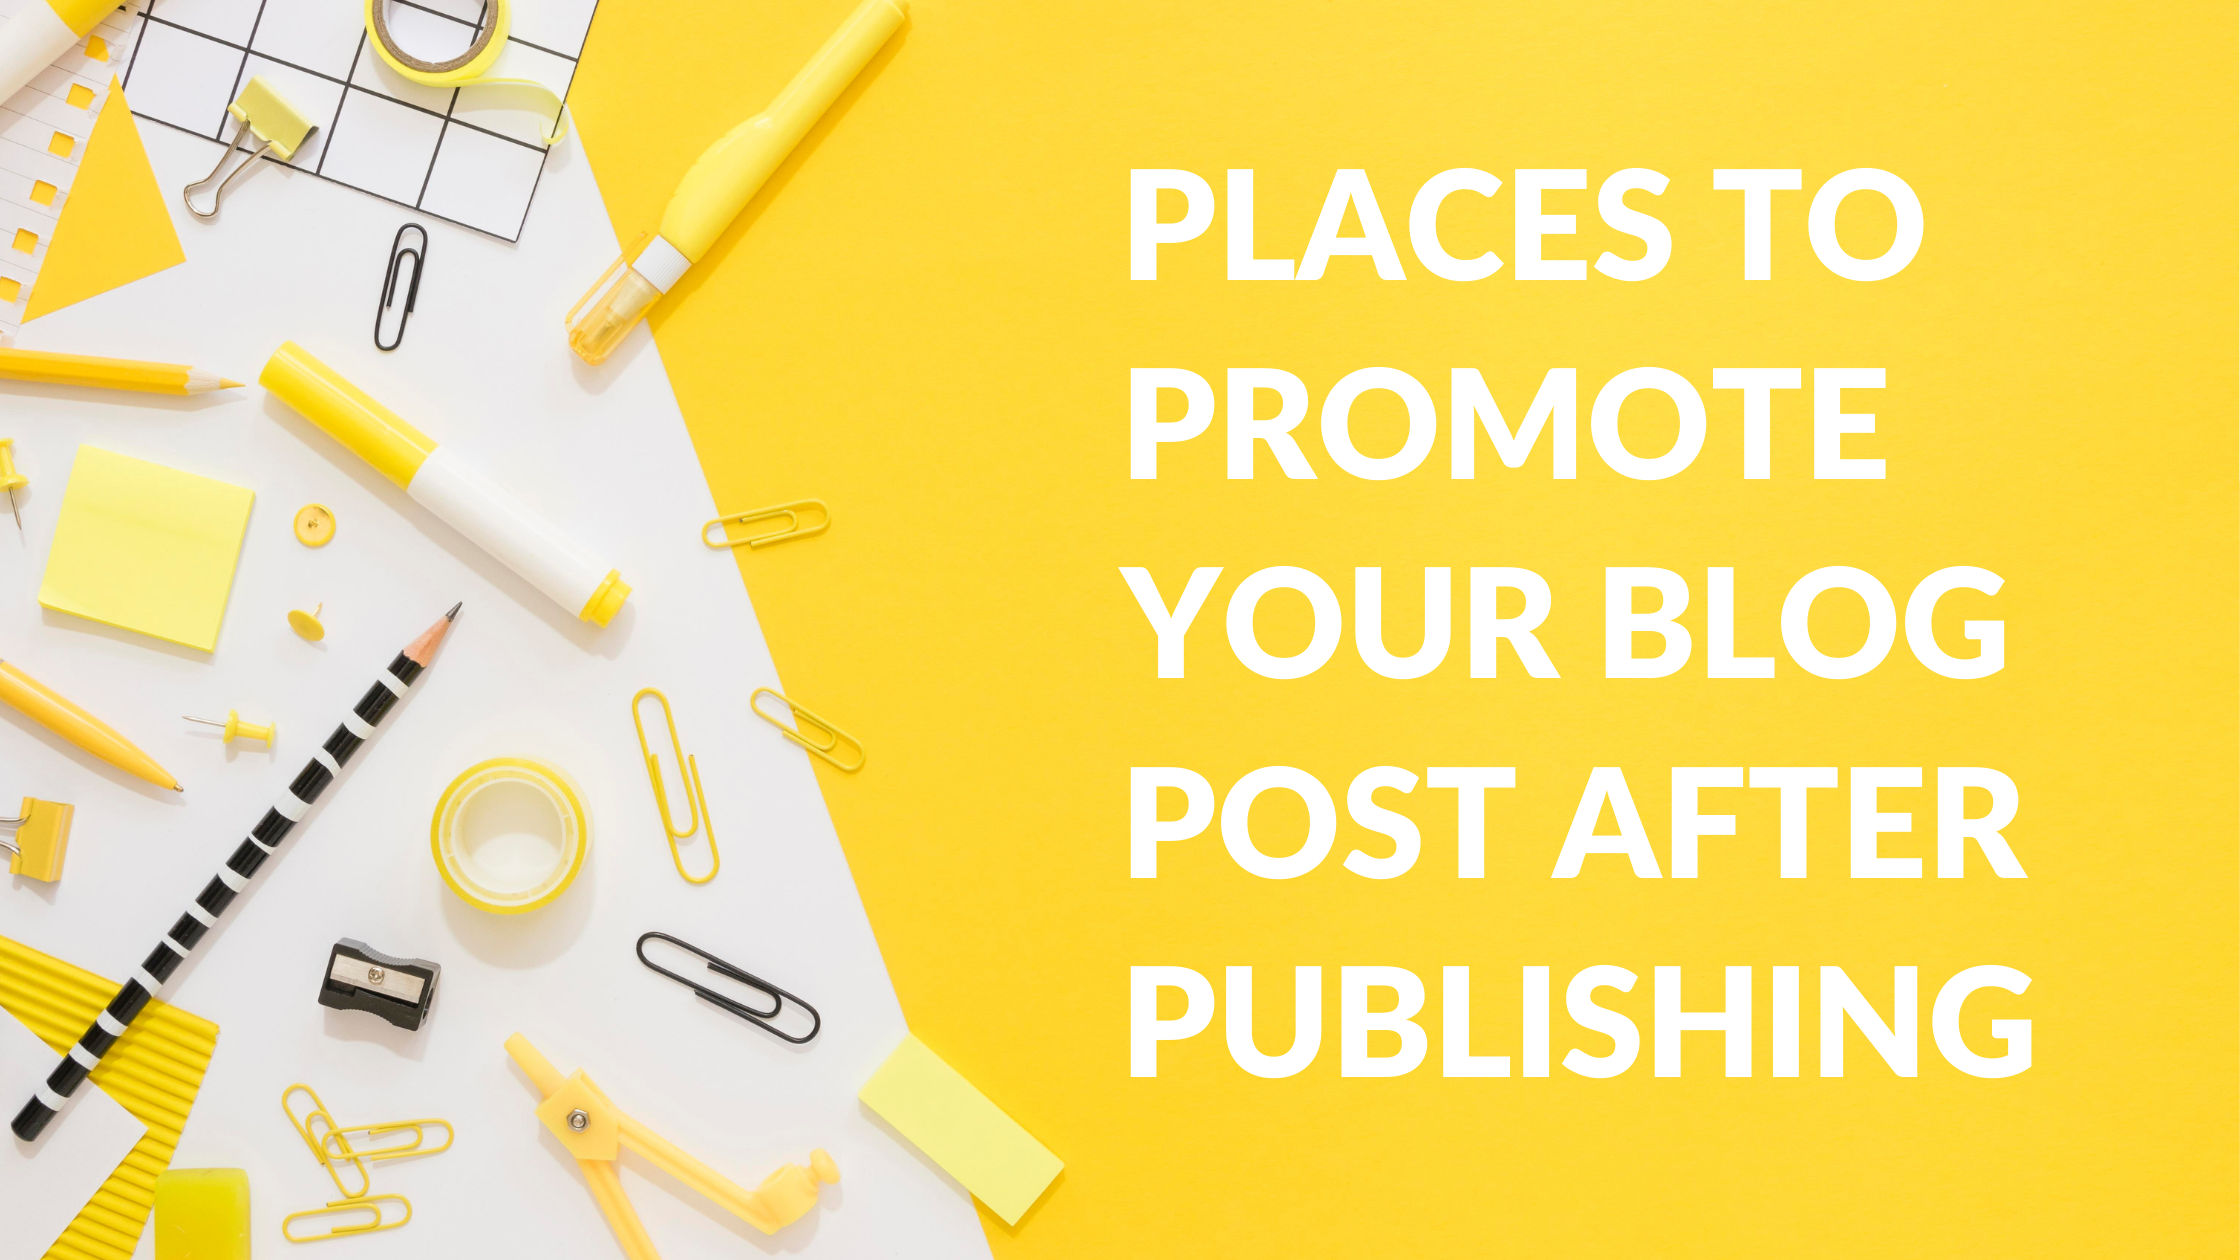 Ultimate List of Places to Promote Your Blog Post After Publishing, Places You Should Be Sharing Your Content, how to promote your blog for free, where can i post my blog for free, content sharing platforms, best place to post articles online